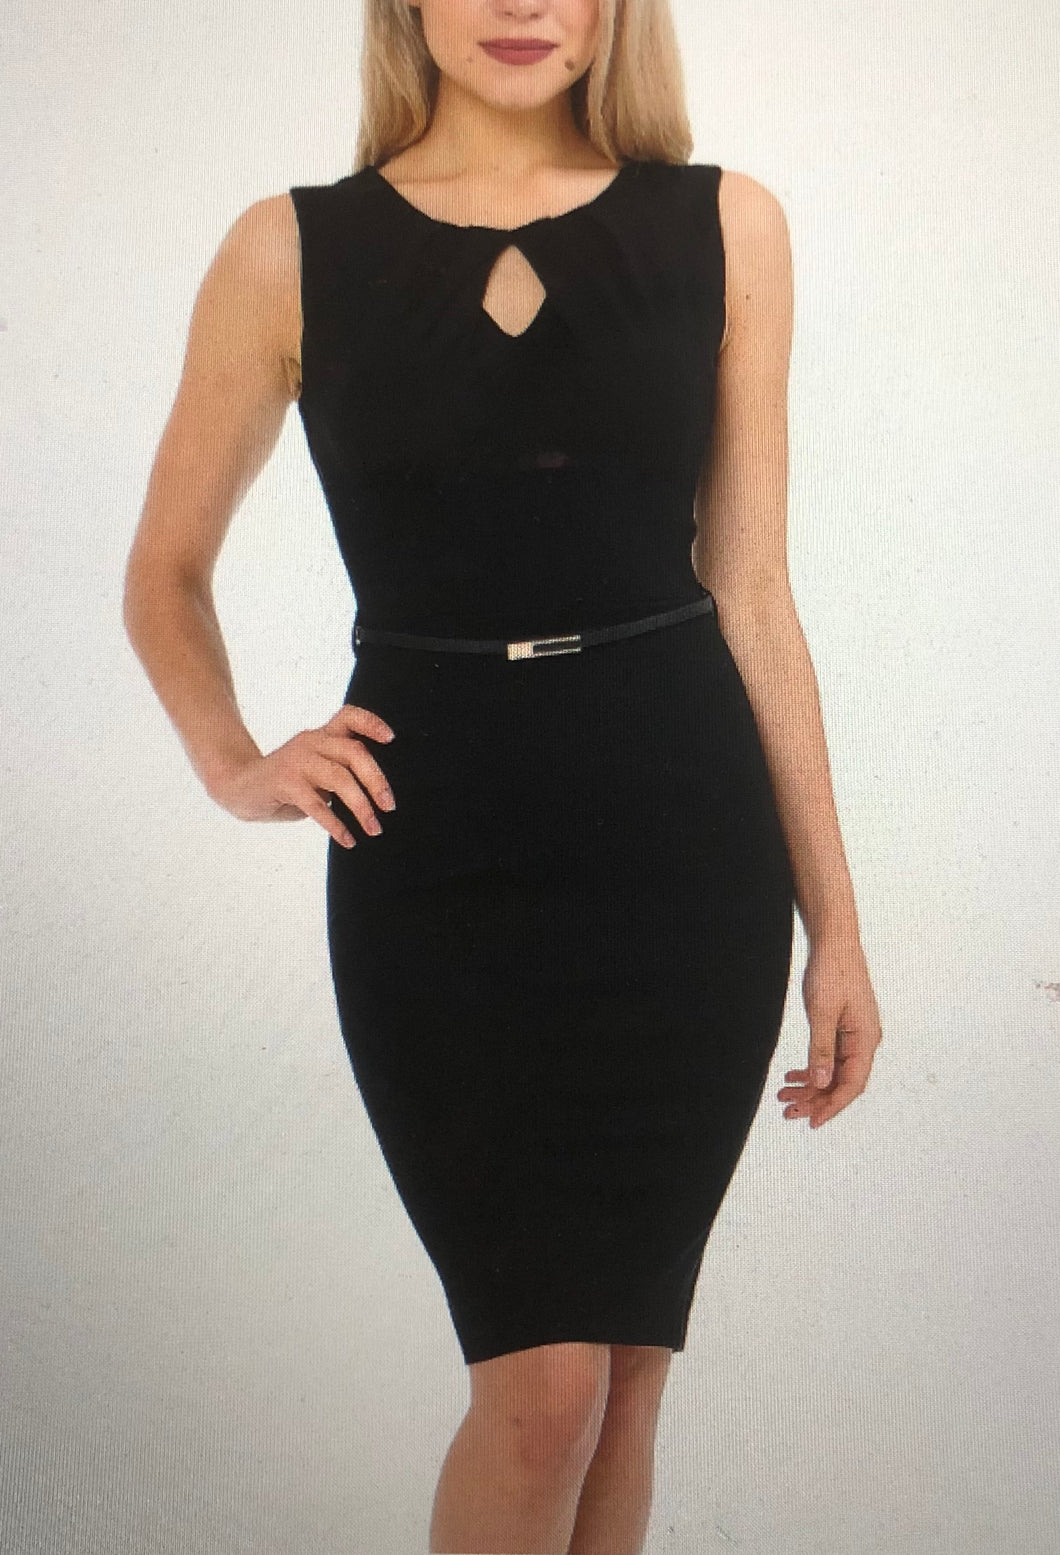 Black classic body con dress with keyhole neckline